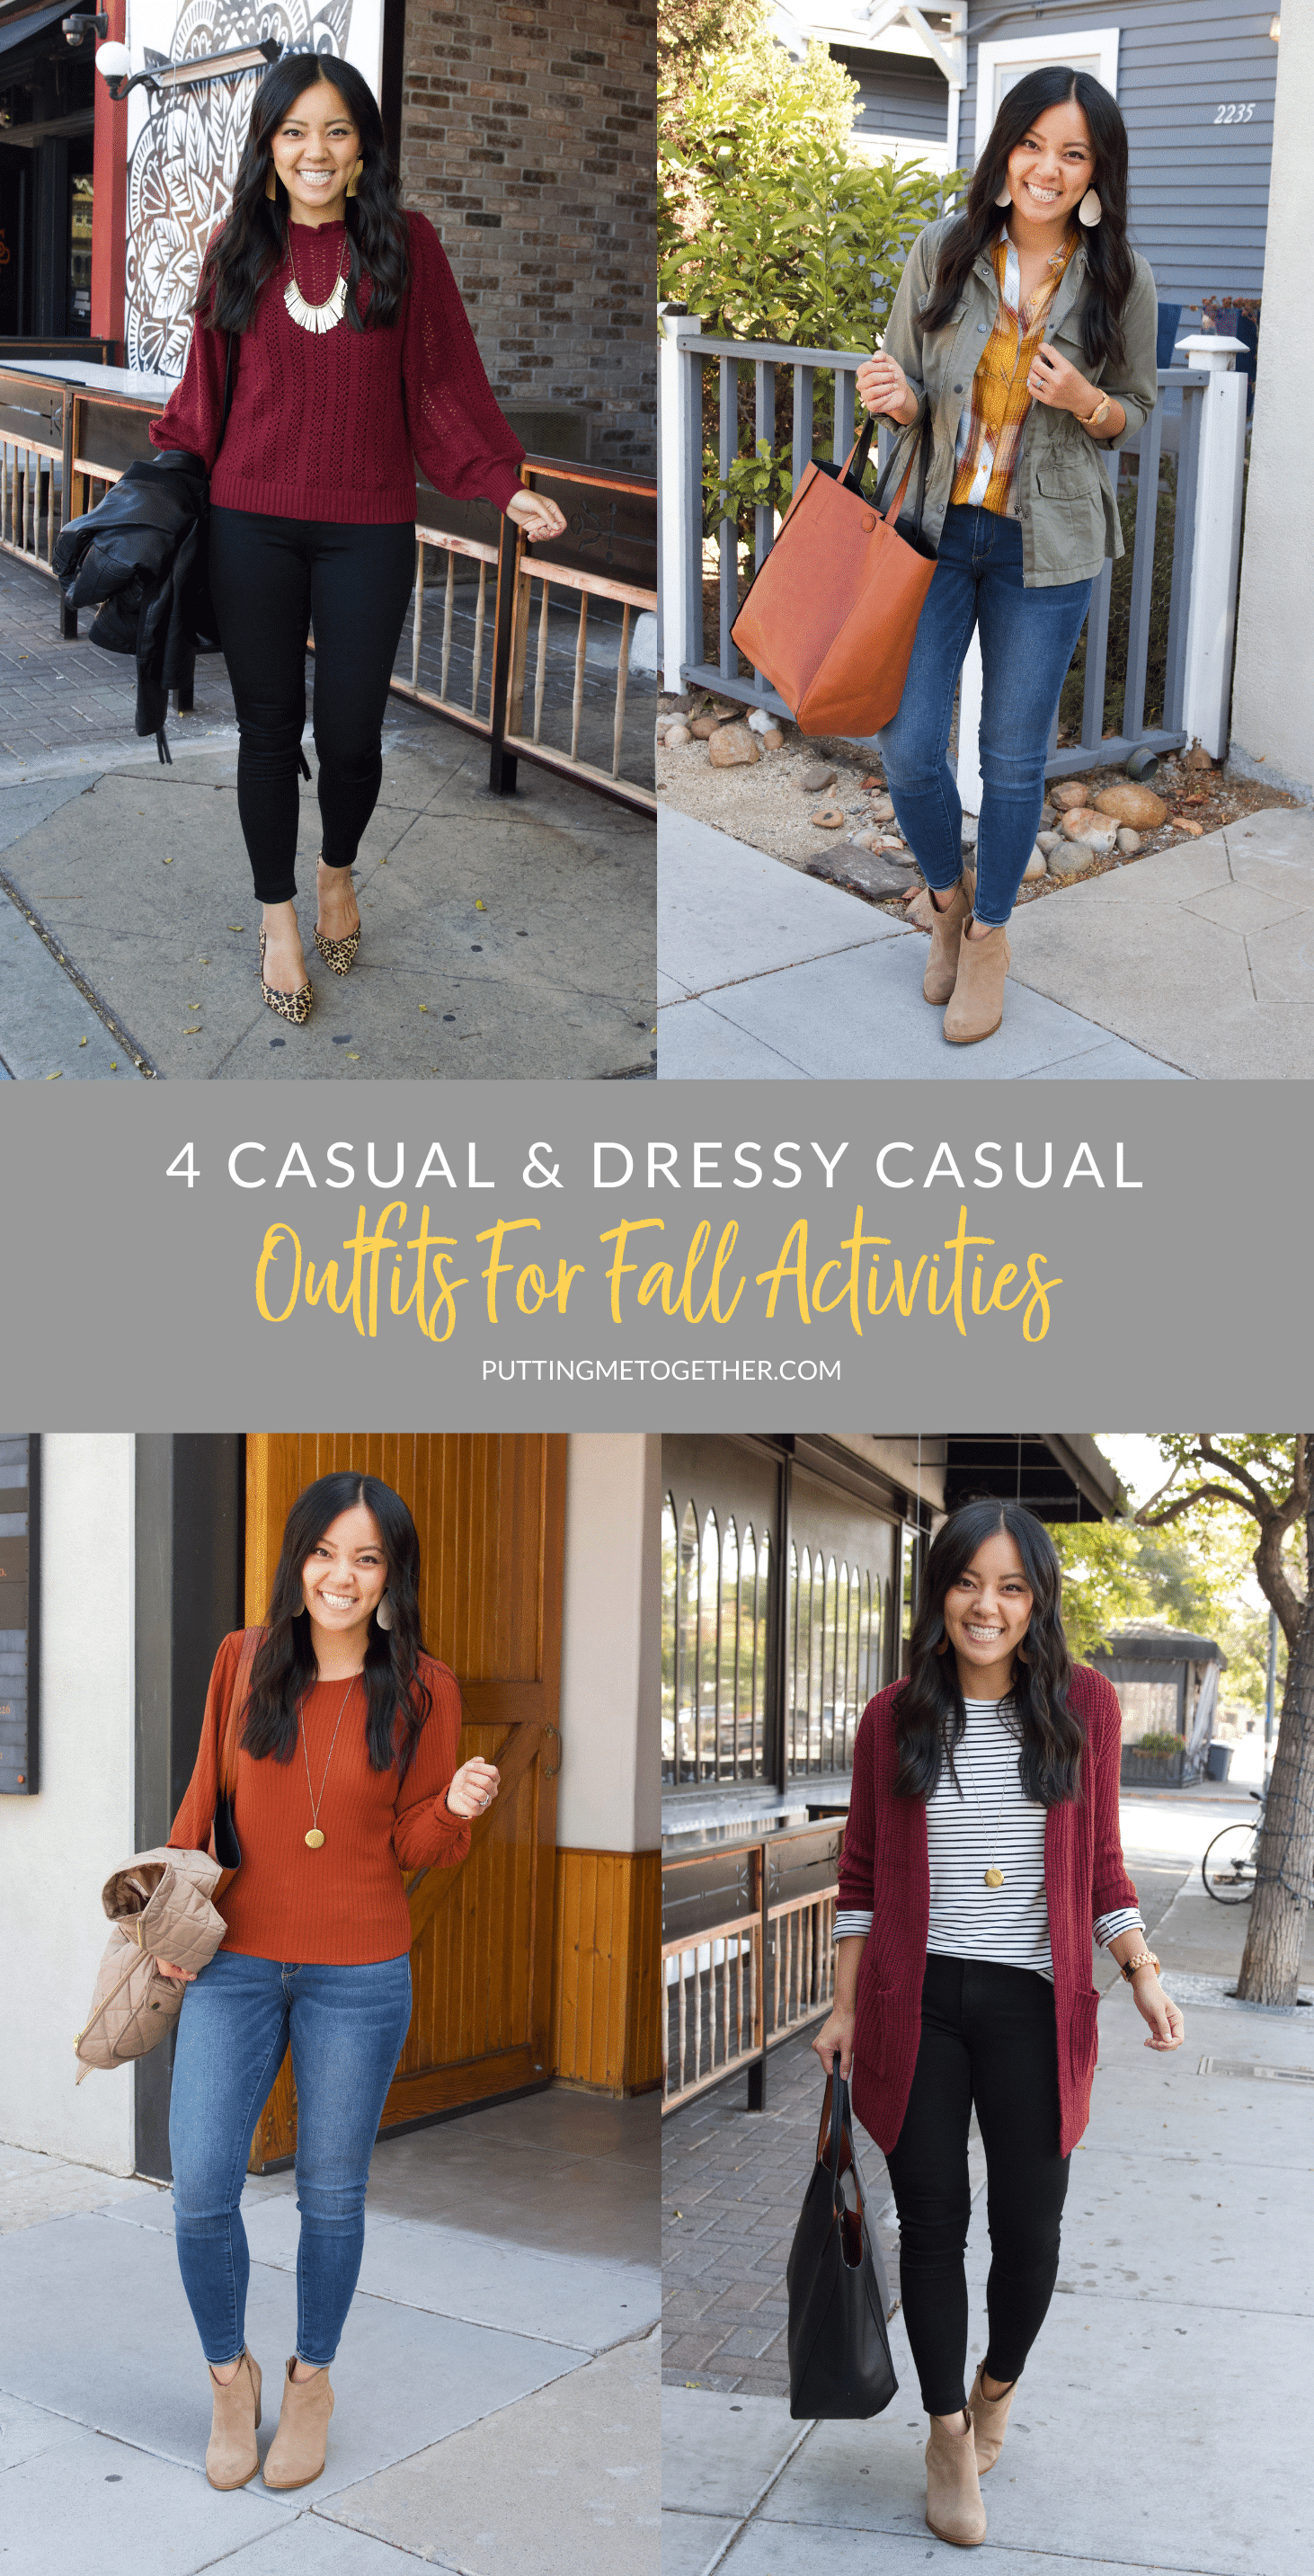 4 Casual & Dressy Casual Fall Outfits